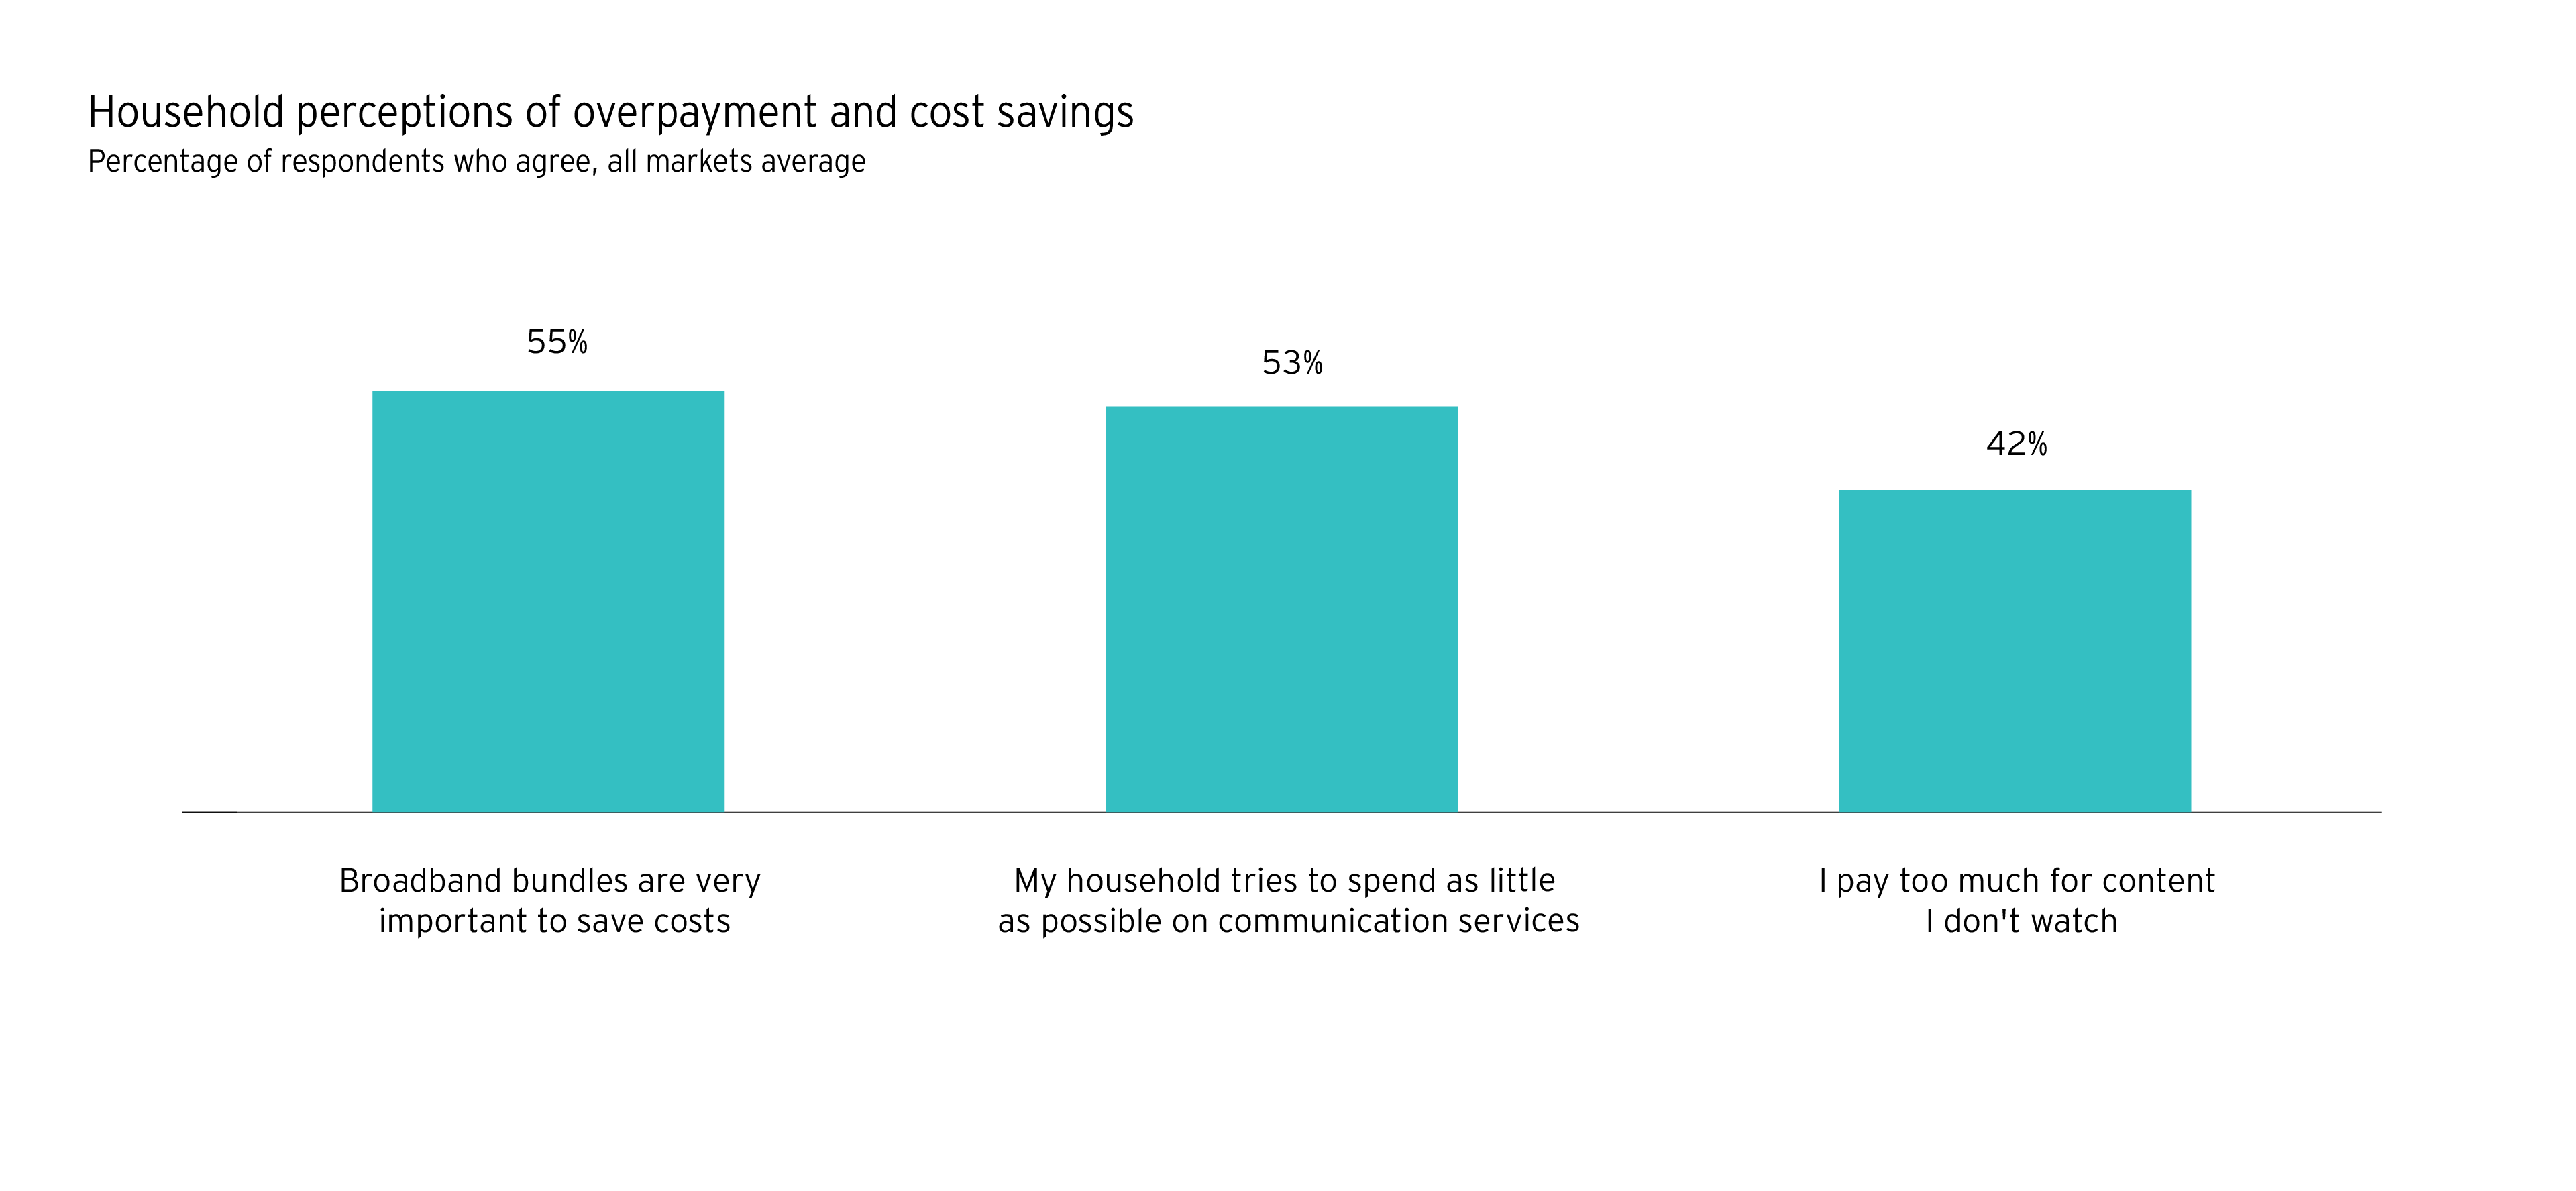 Chart of Household perceptions of overpayment and cost savings